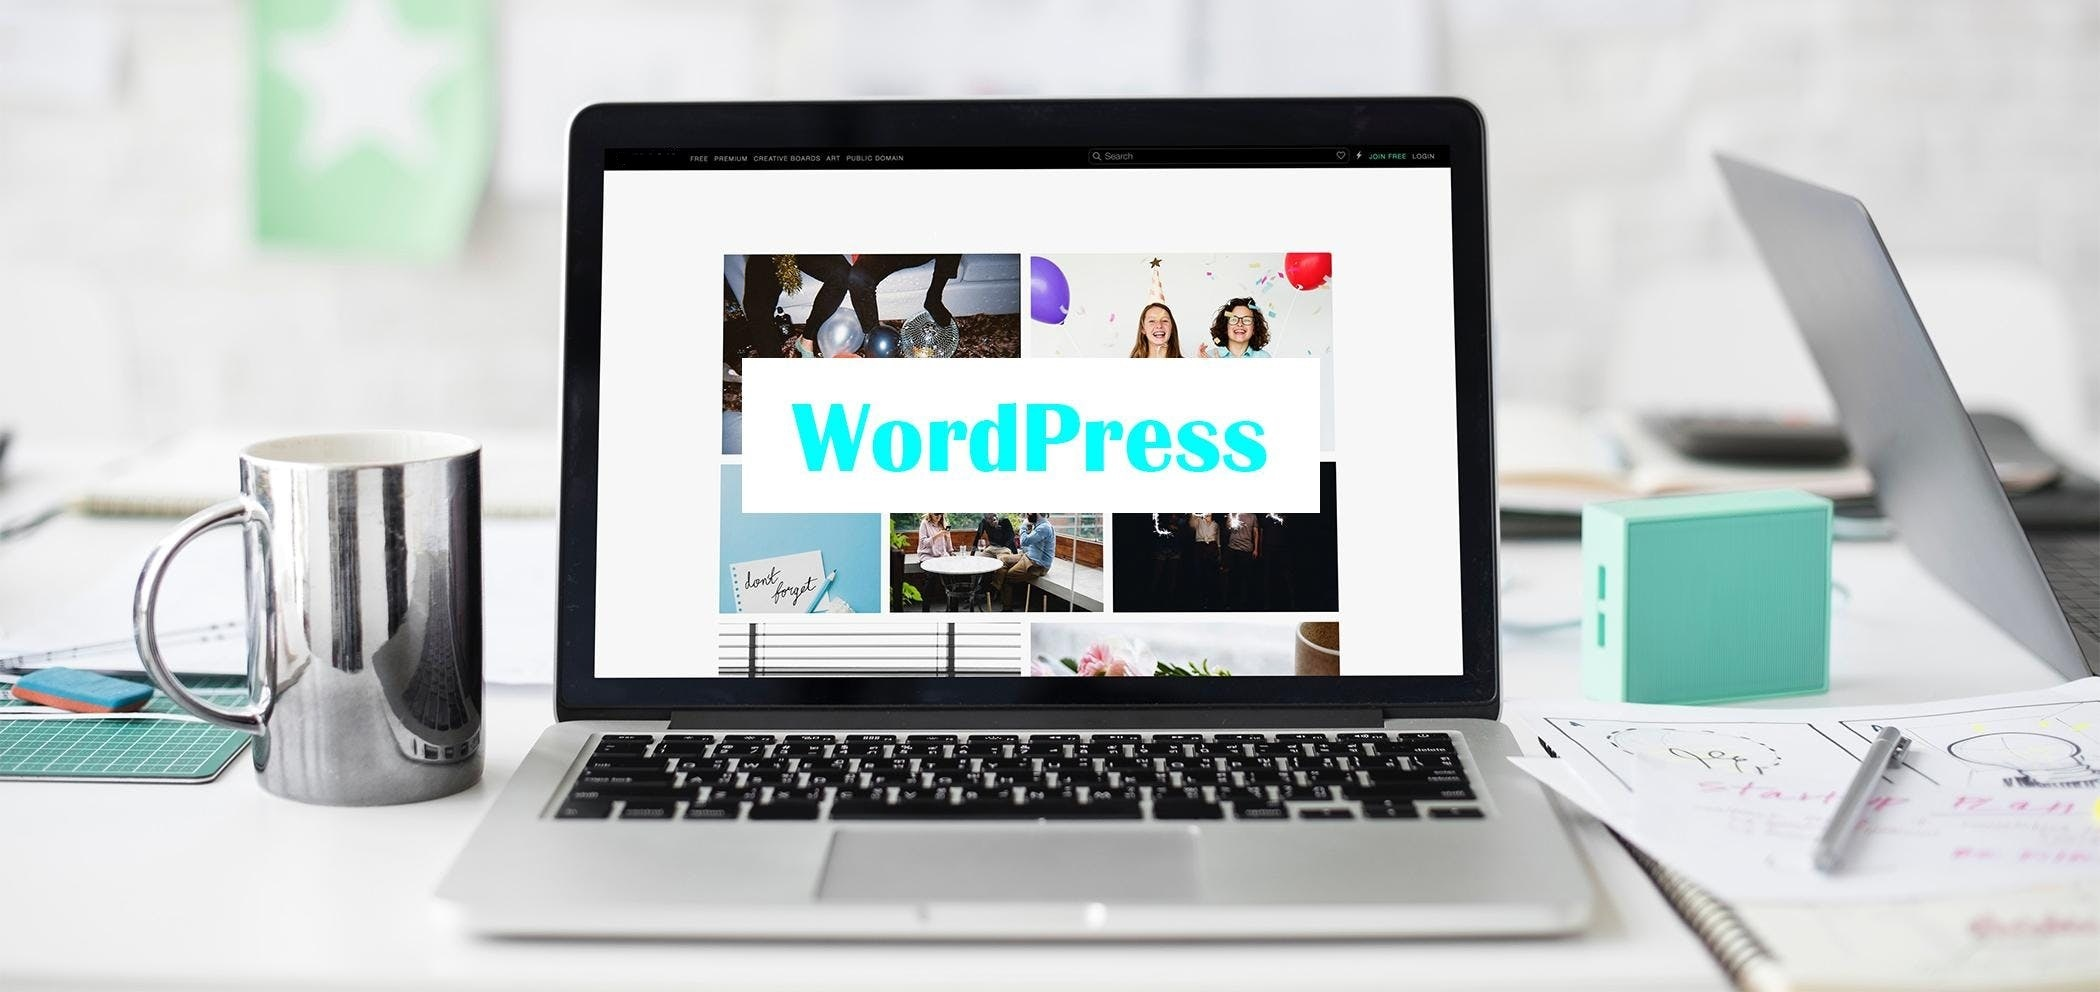 wordpress web development Top 9 Reasons Why WordPress Websites Are the Best for Small Businesses